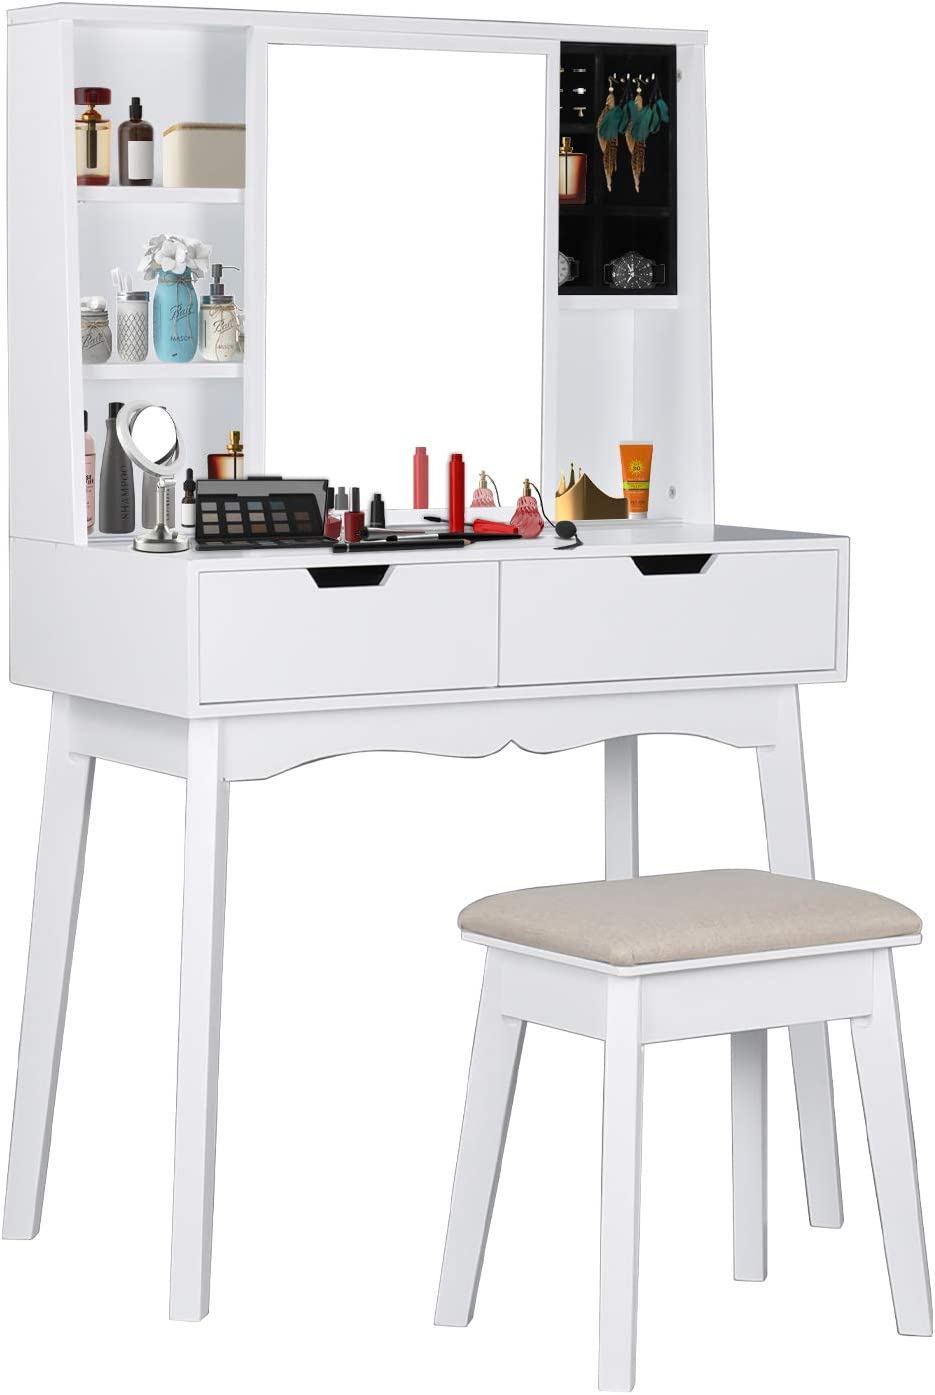 COZUHAUSE White Vanity Table Set with Movable Mirror, Jewelry Cabinet, Detachable Jewelry Storage Box, Cushioning Stool, 2 Drawer Dressing Table (White)